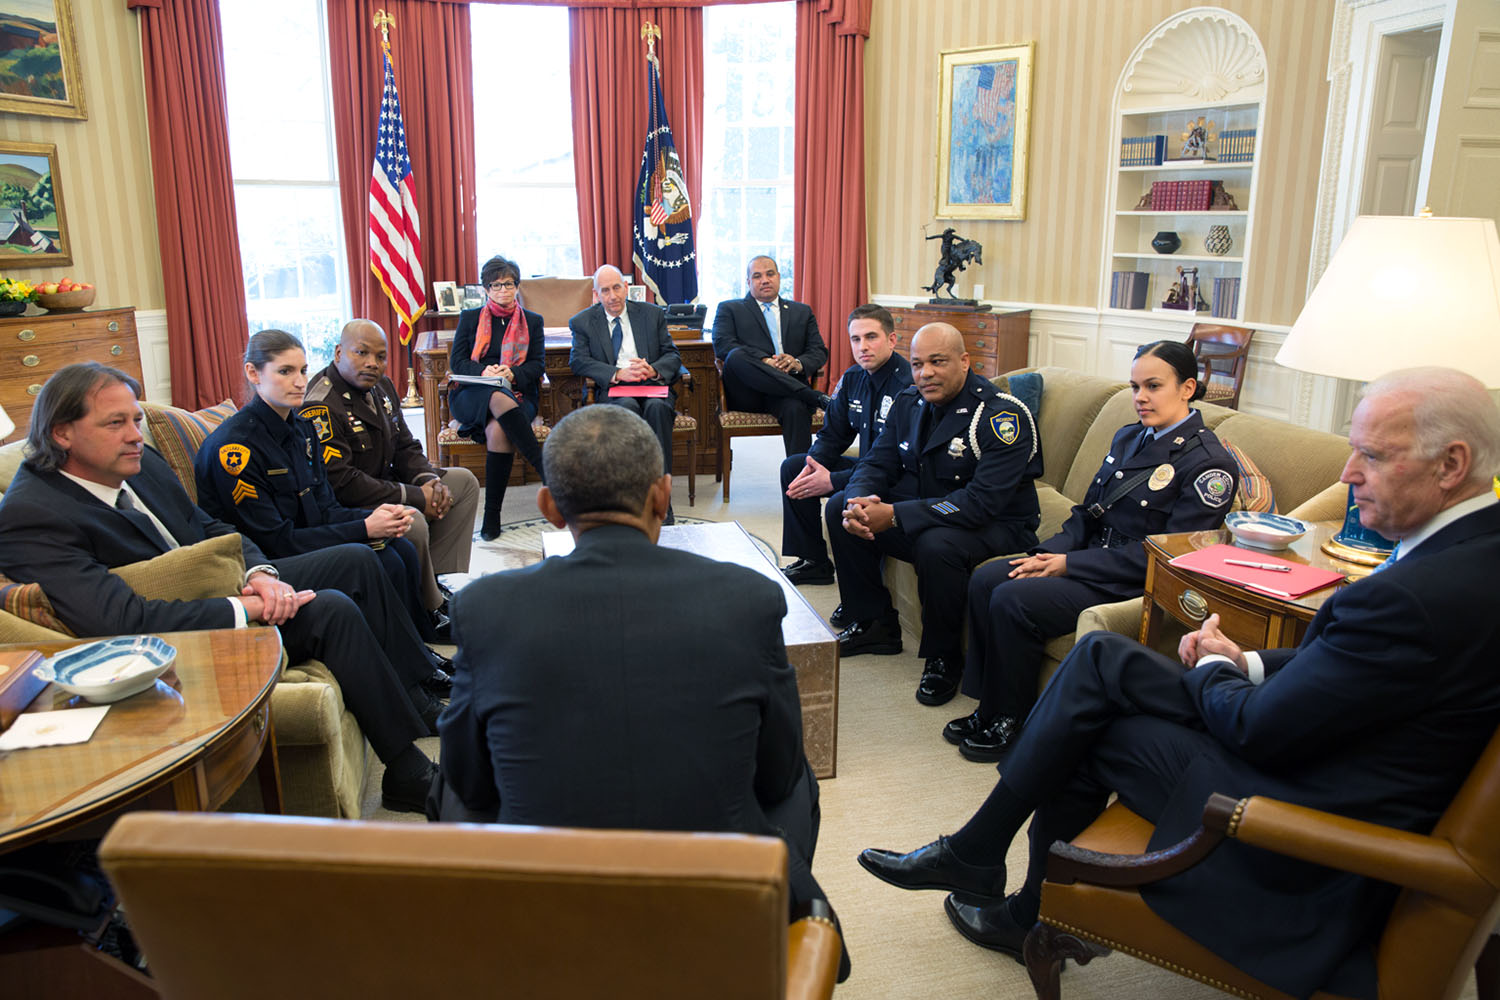 President Obama and Vice President Biden meet with rank-and-file law enforcement officials